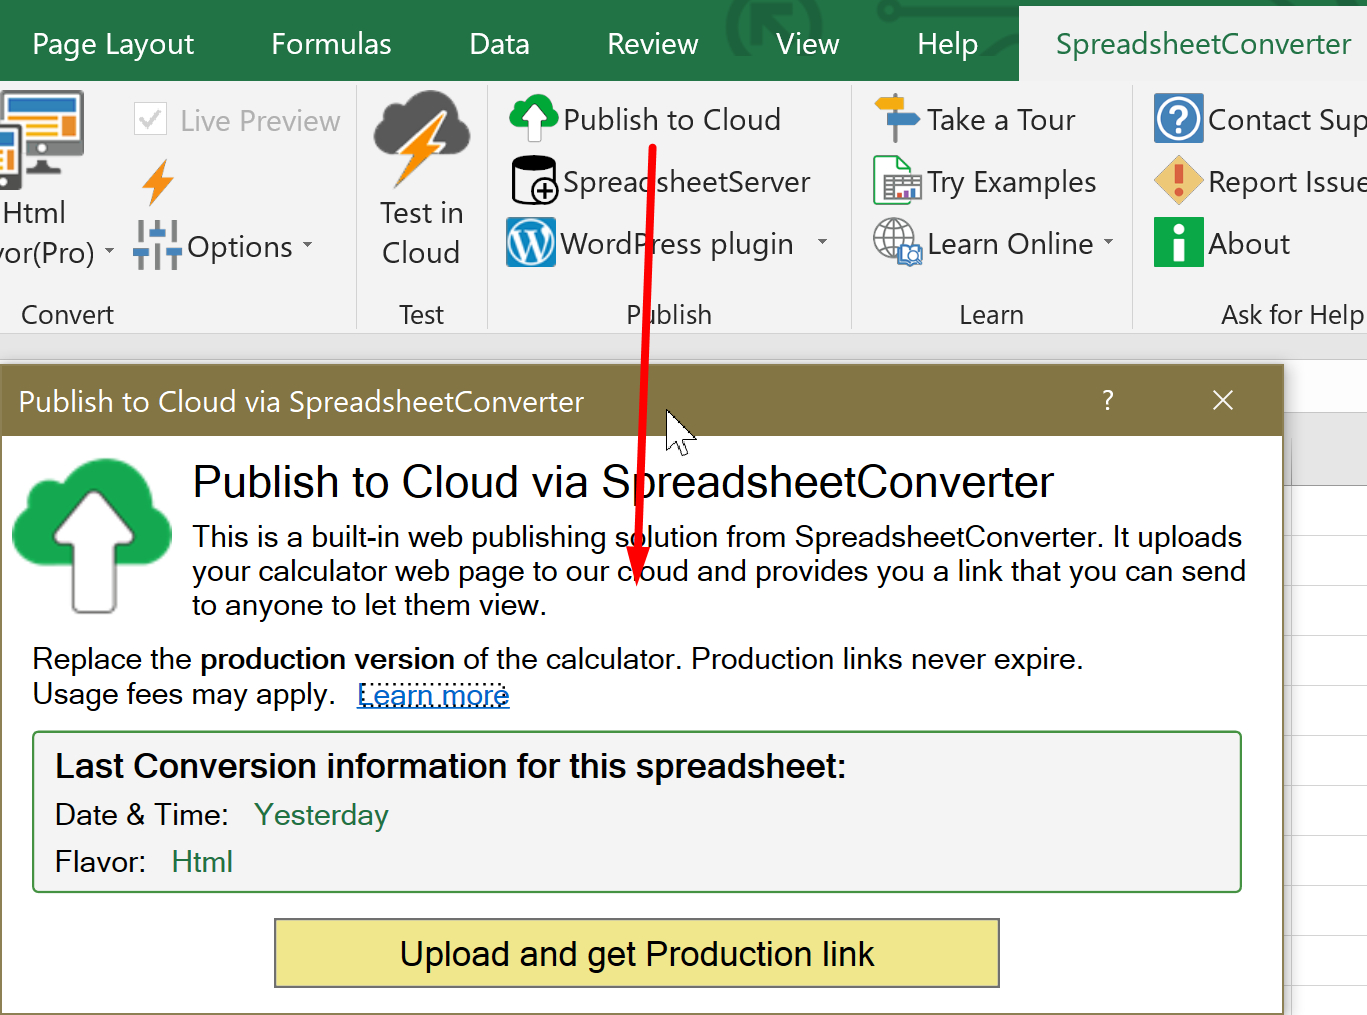 Spreadsheet Page For Import Excel Spreadsheets And Charts In Wix With Publish To Cloud